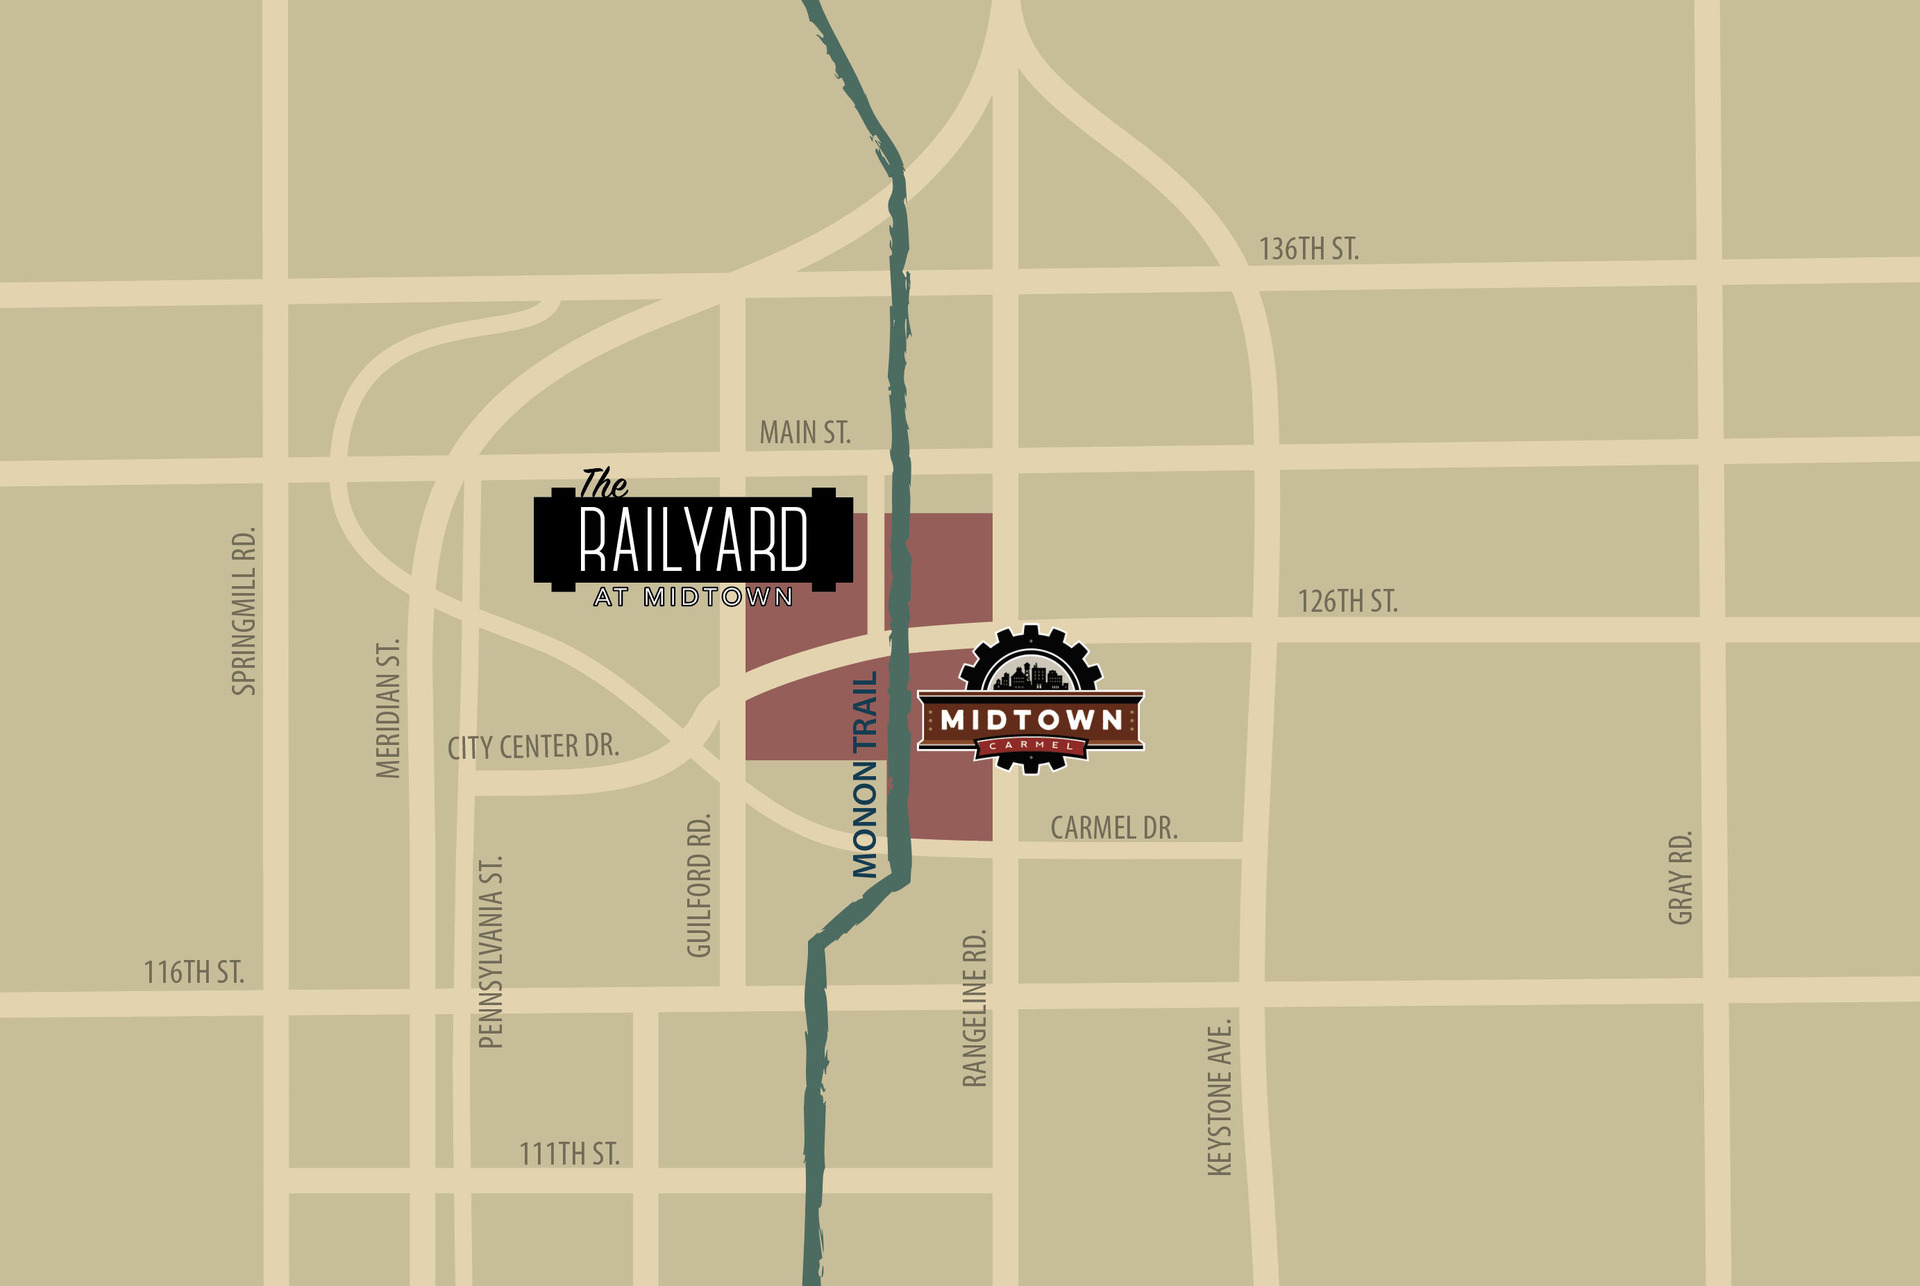 Get Directions to The Railyard at Midtown